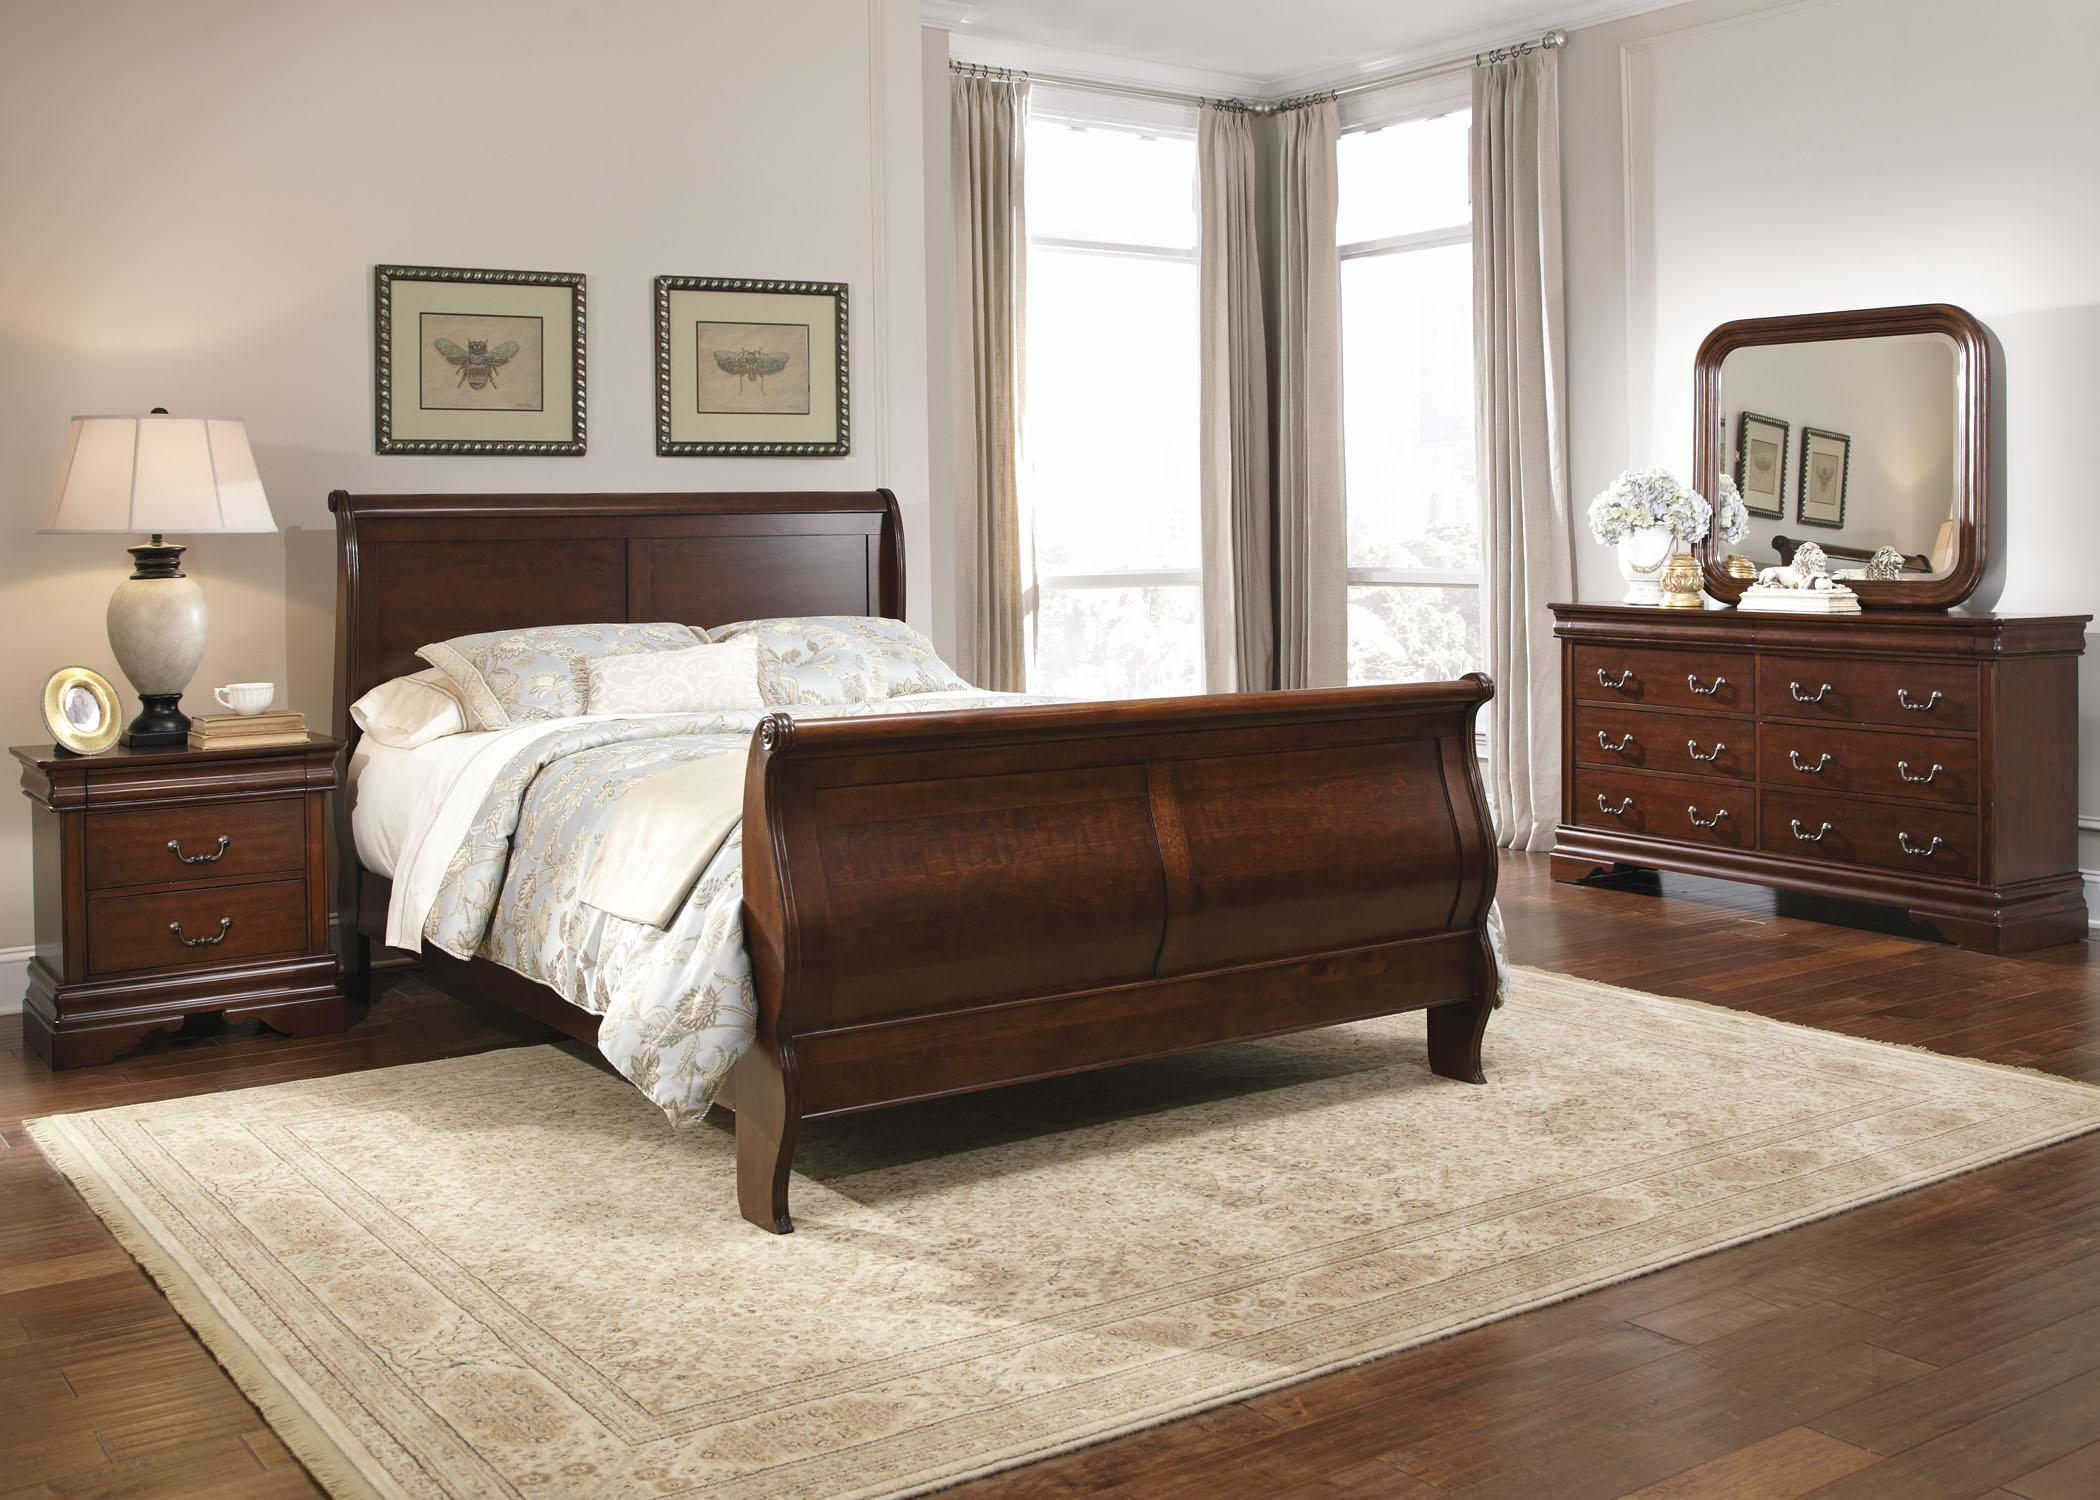 Liberty Furniture Carriage Court Full Sleigh Bed, Dresser & Mirror - Item Number: 709-YBR-GP133